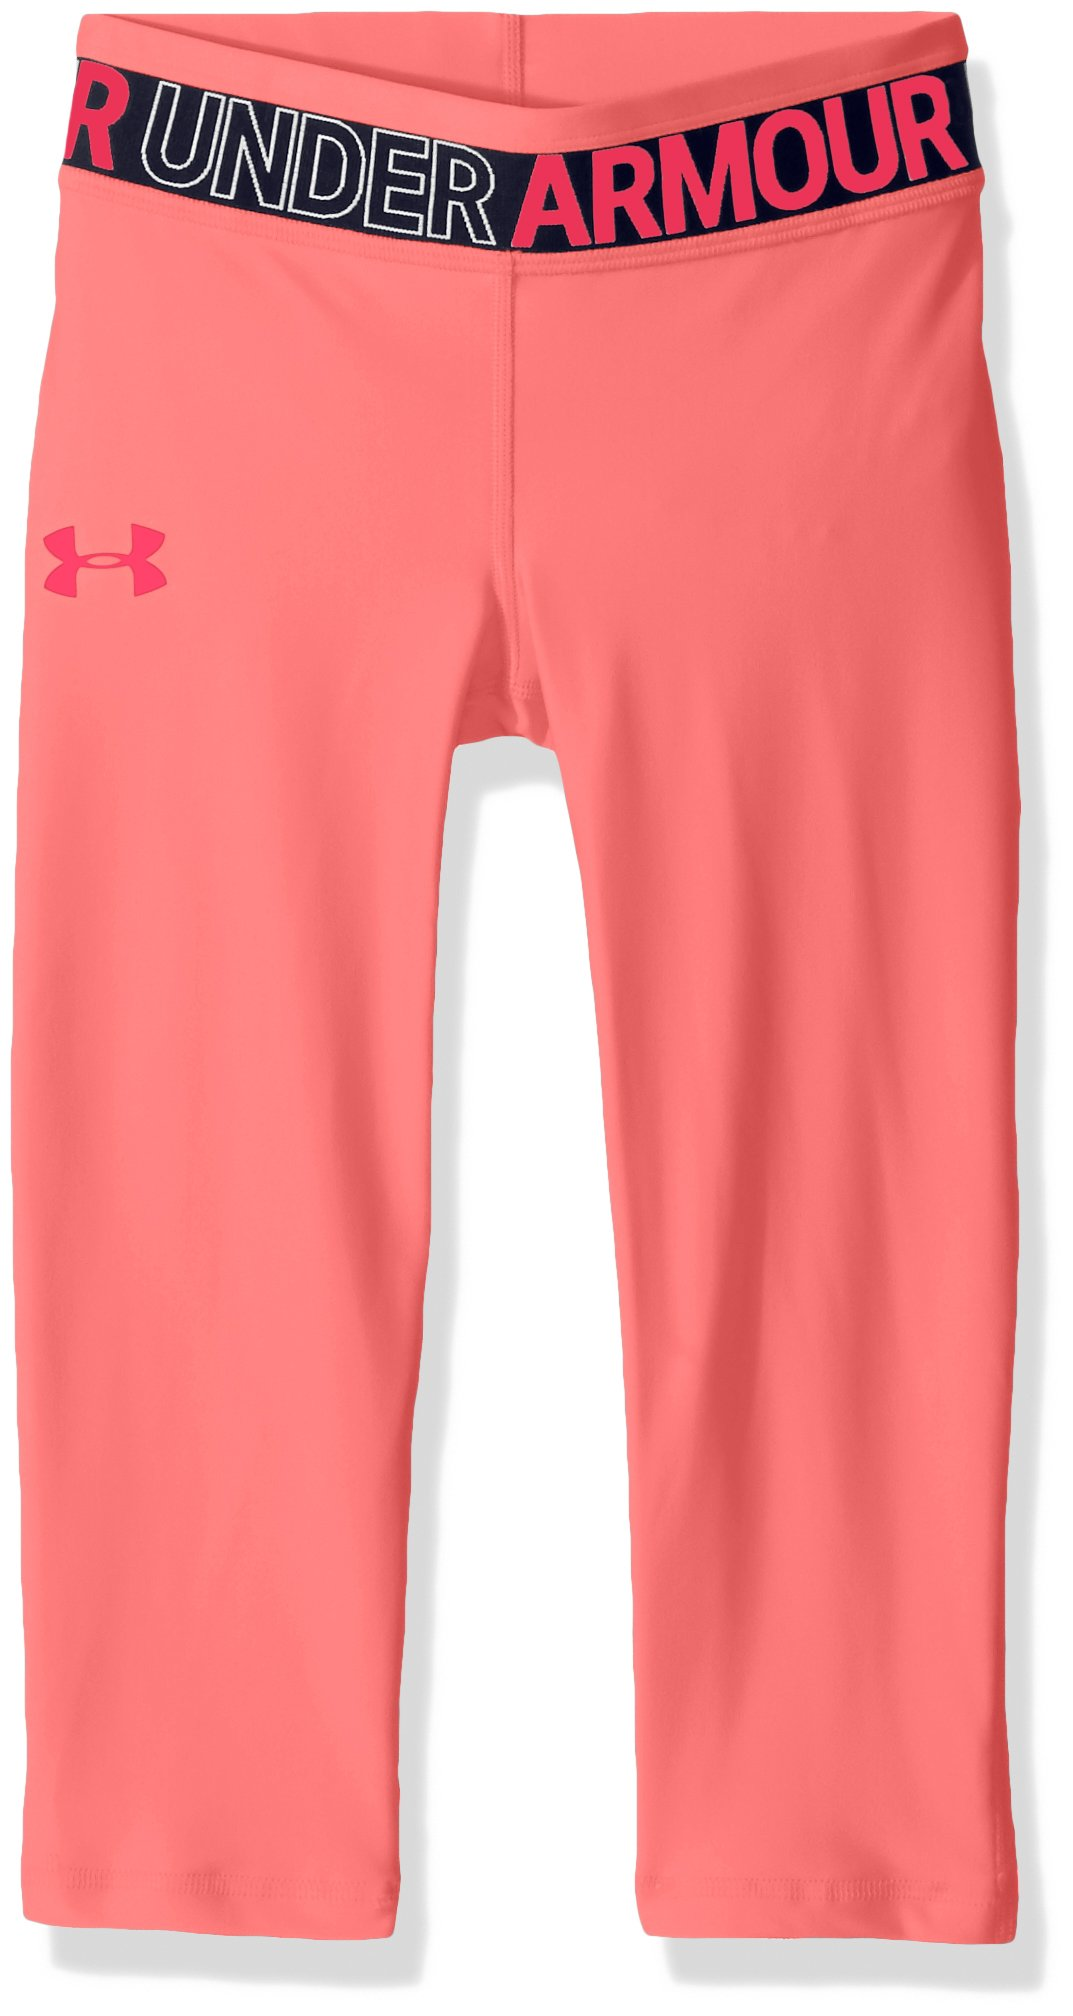 Under Armour Girls' HeatGear Armour Capris, Brilliance /Coral Cove, Youth Large